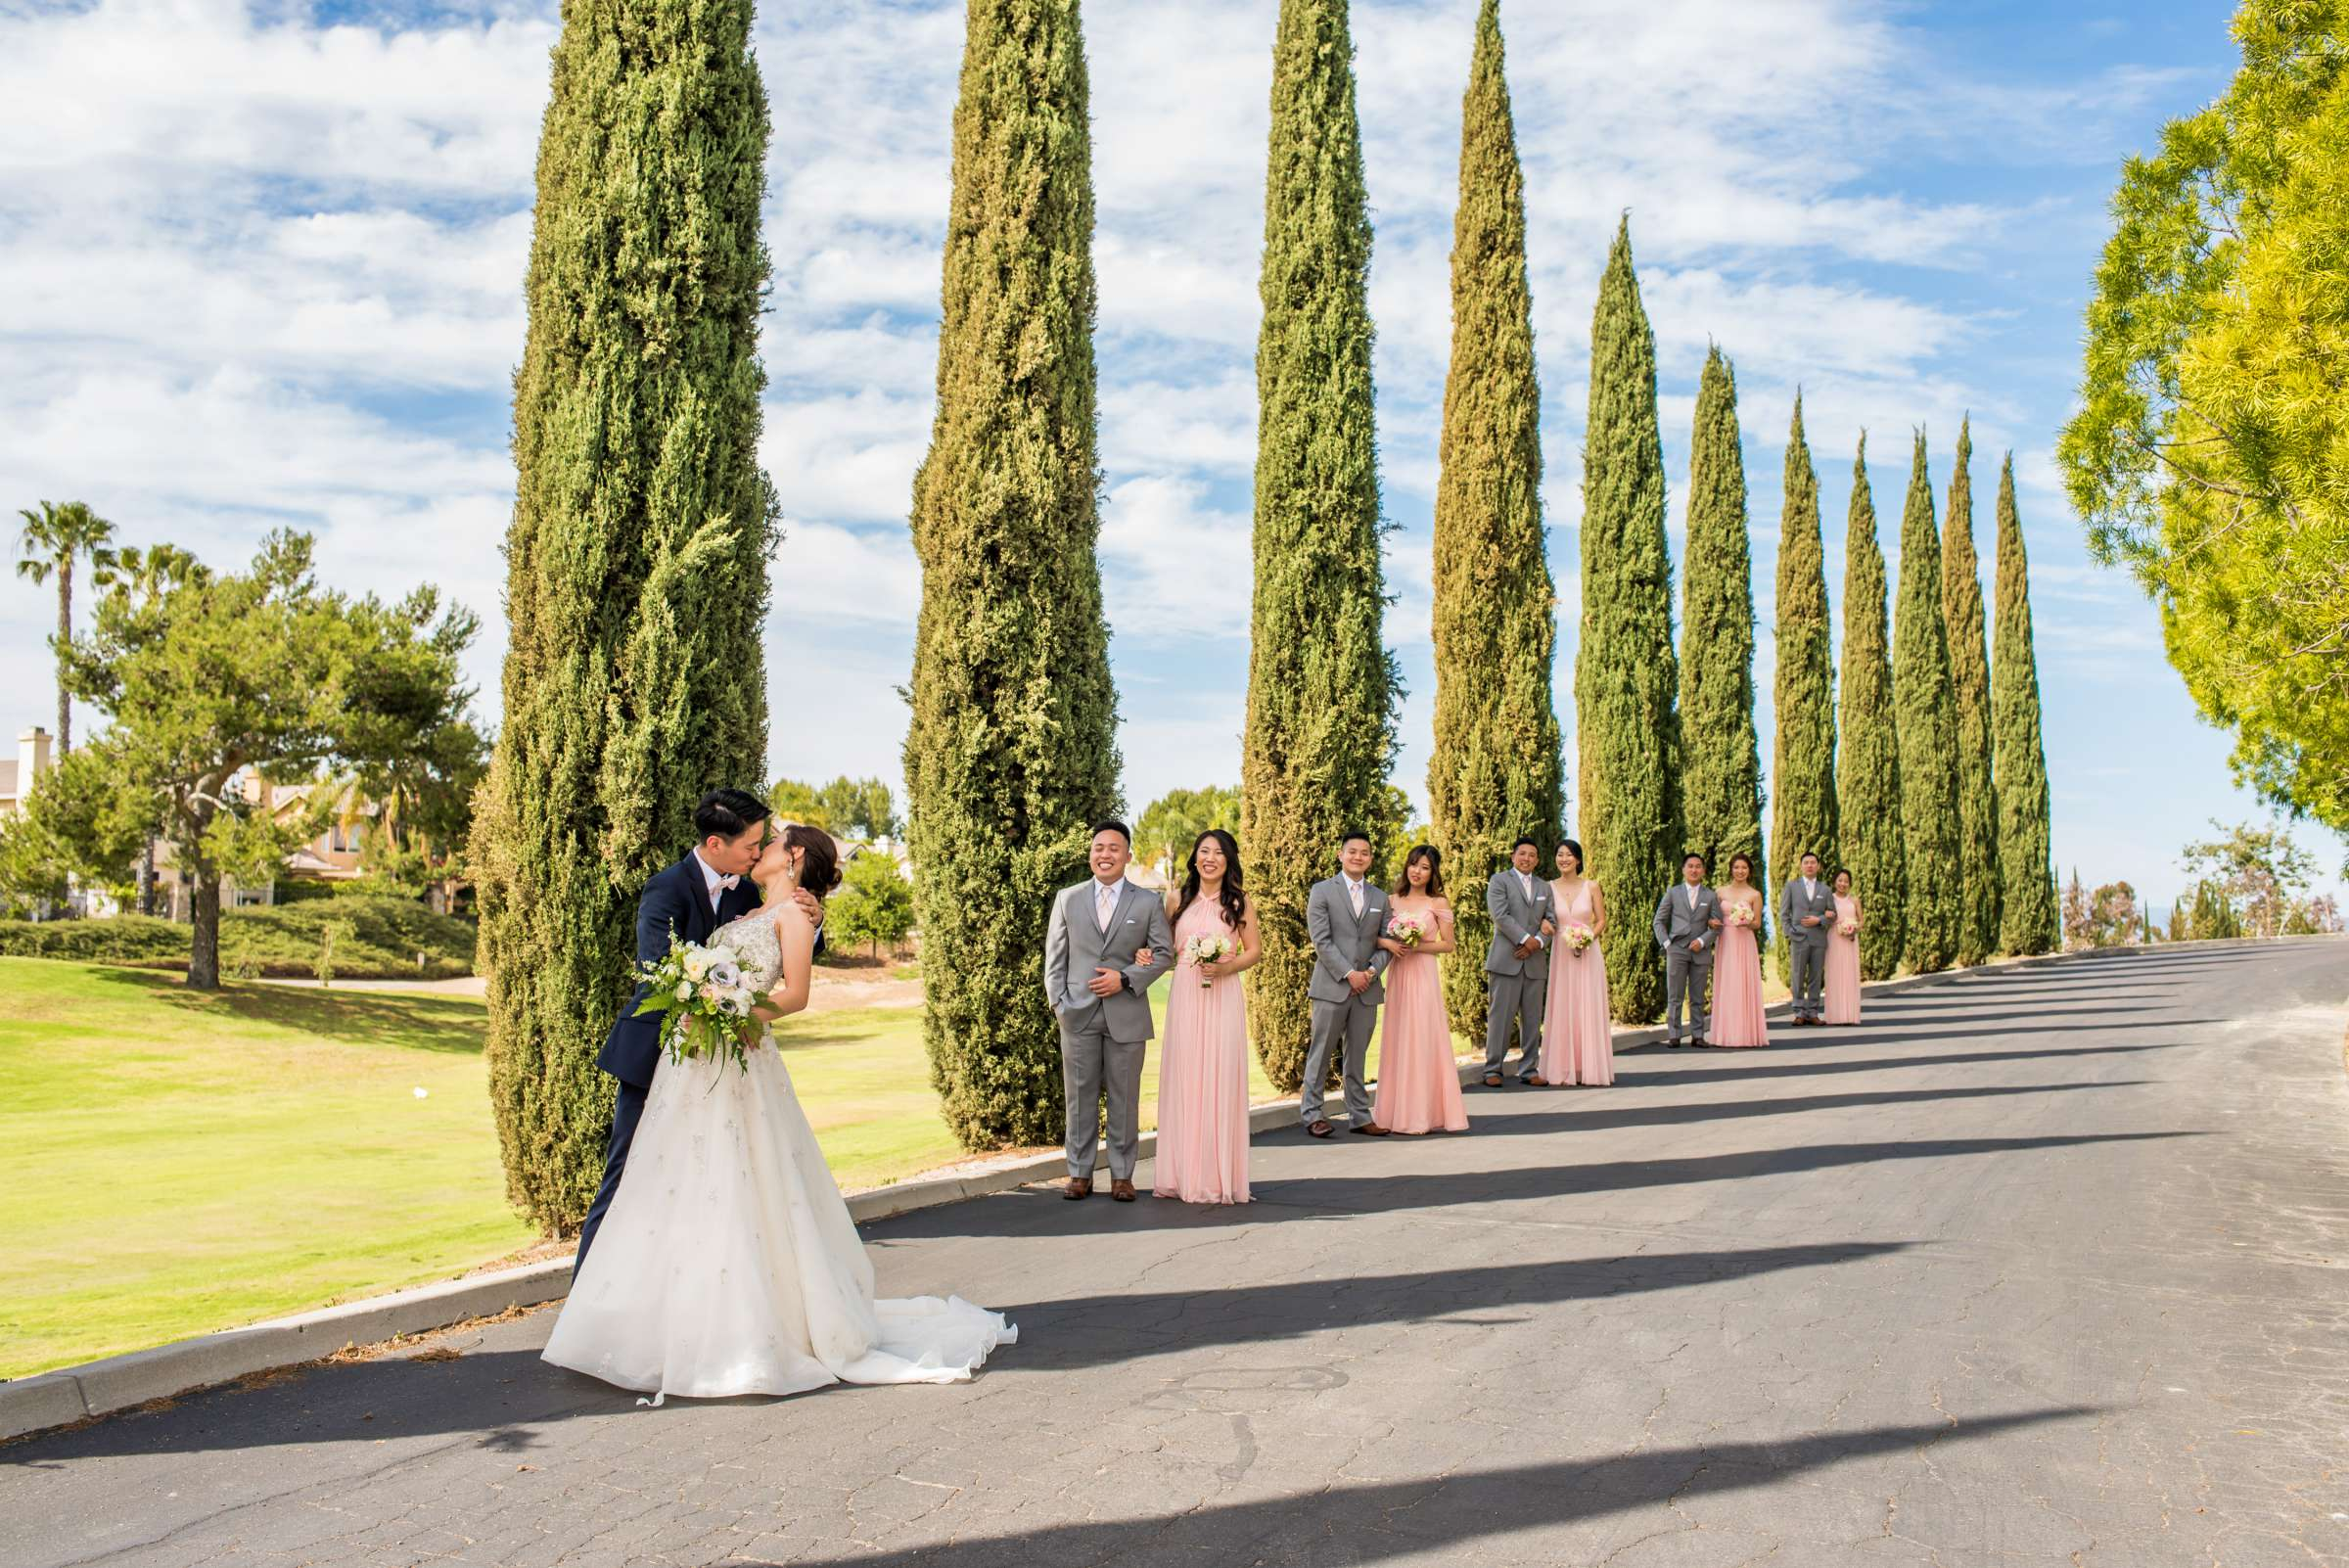 Bridal Party at Carmel Mountain Ranch Wedding, Stella and Antonio Wedding Photo #458289 by True Photography